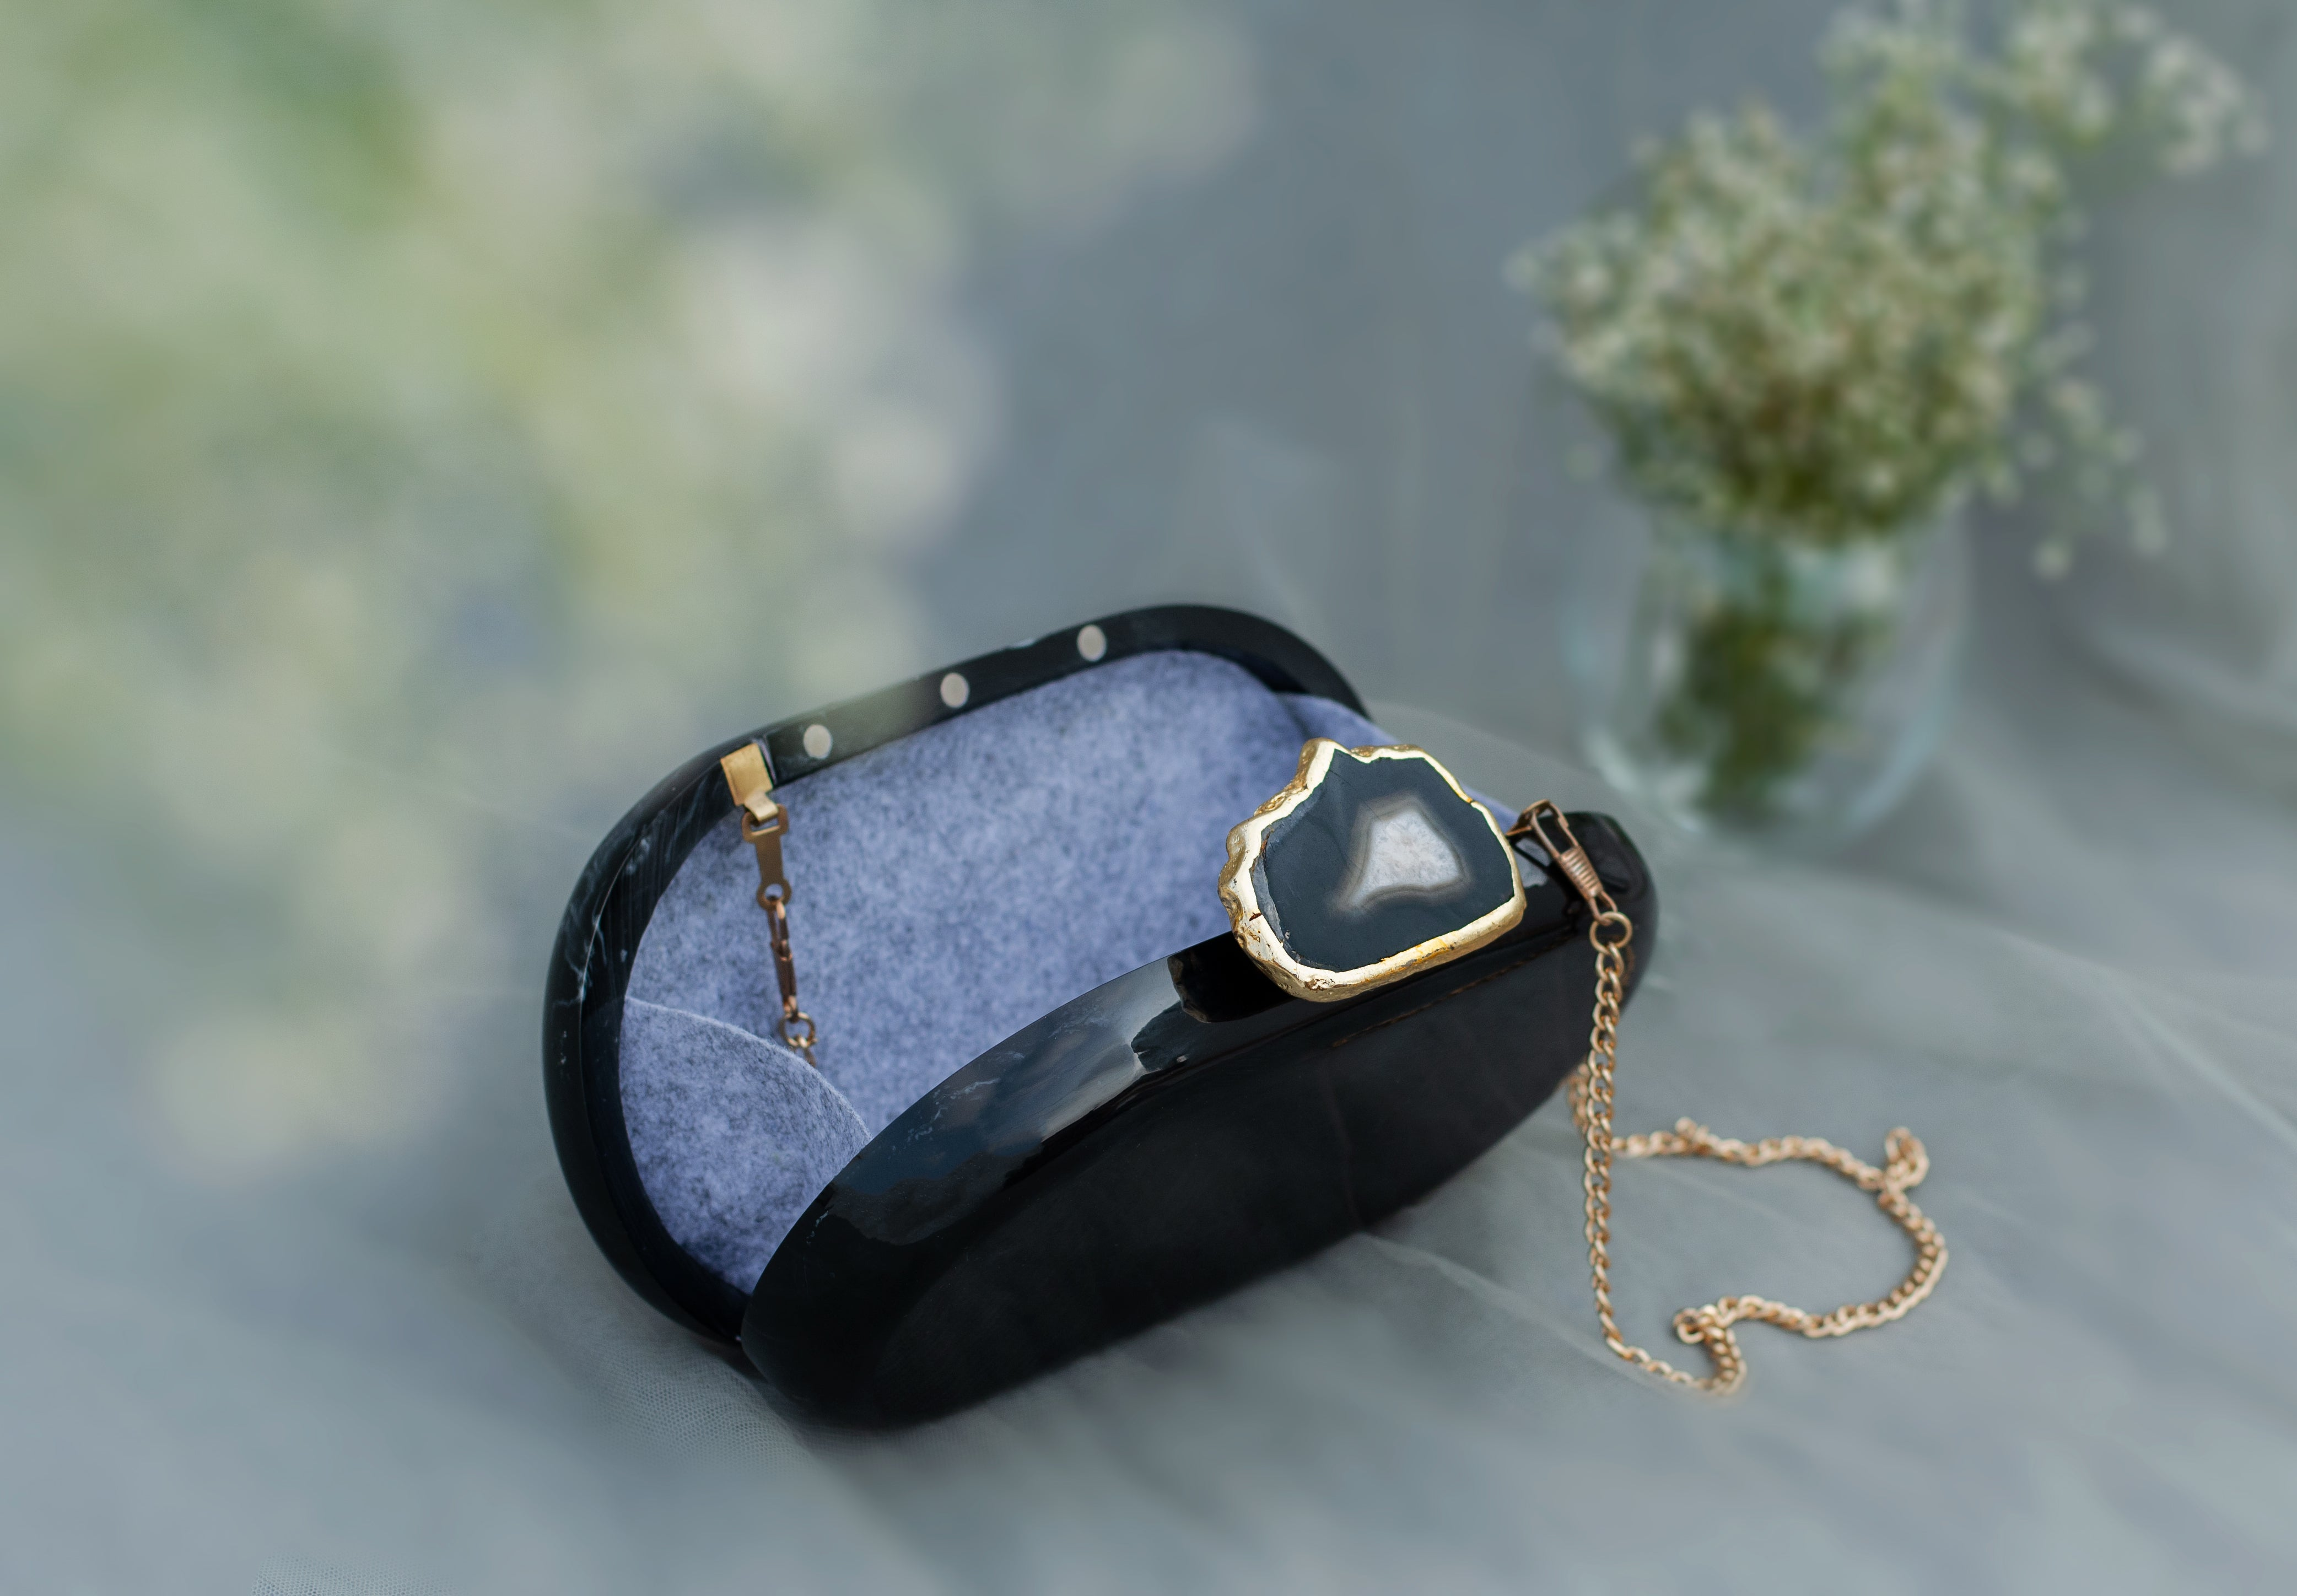 The Black Baroque Capsule Clutch - Black Stone - SOUL EARTH